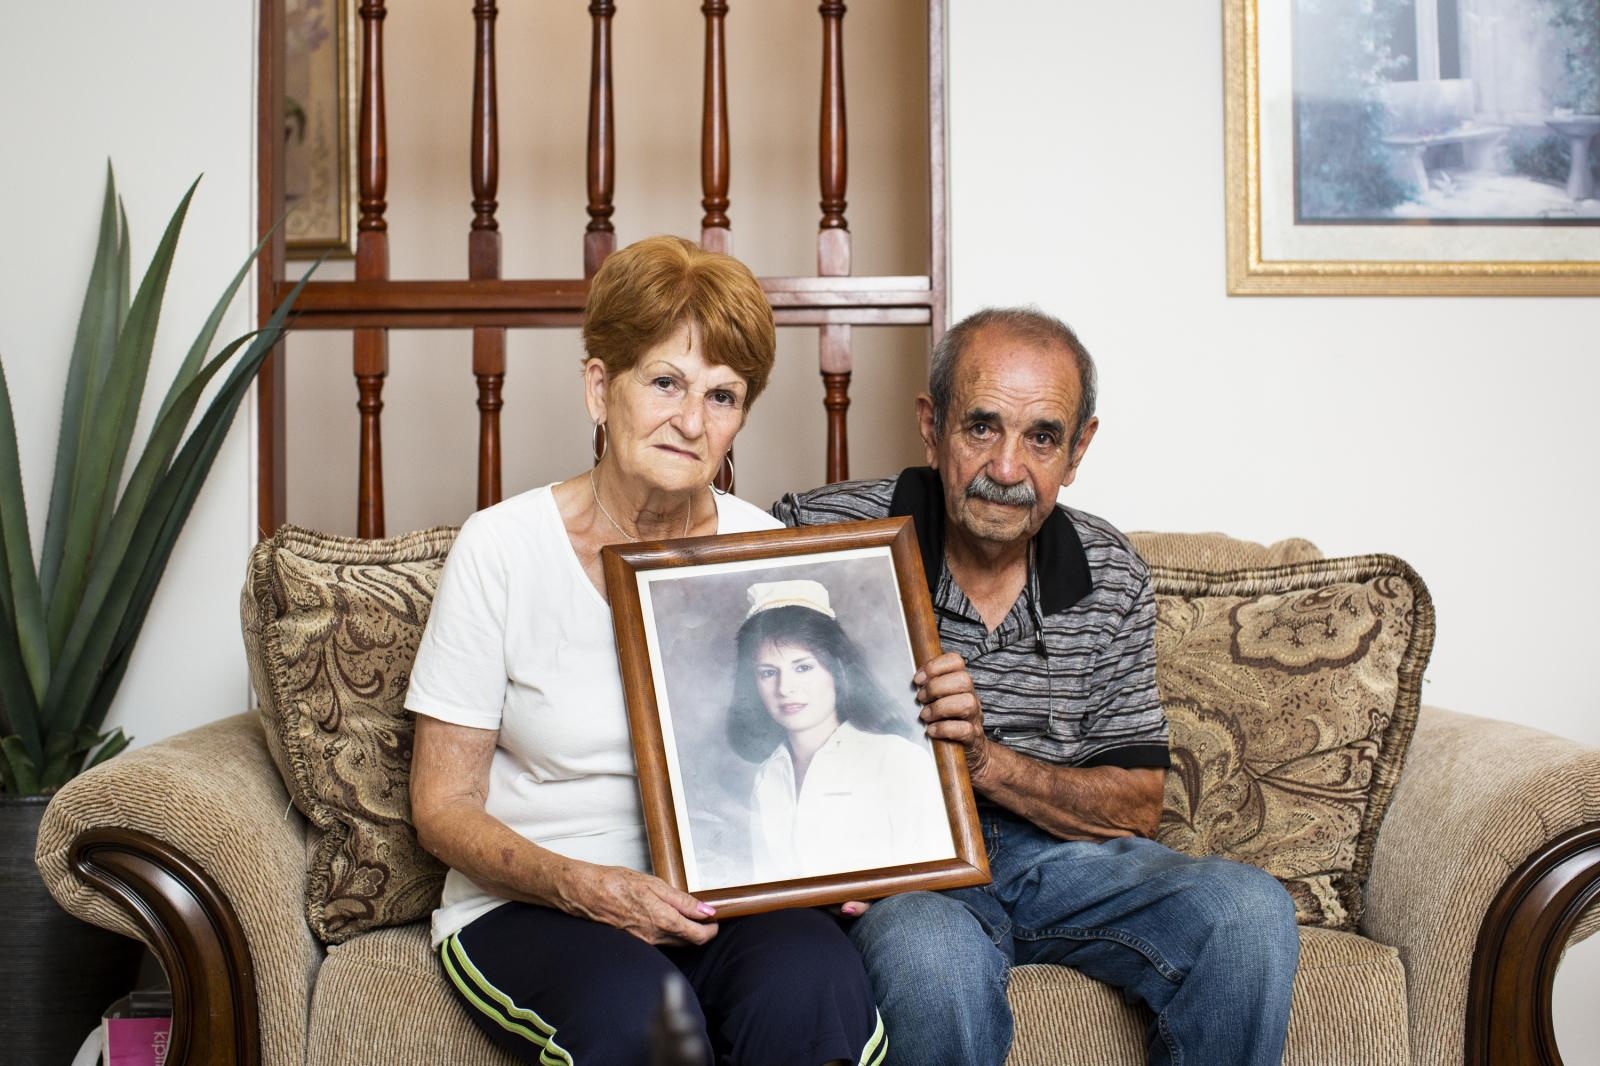 Nereida Maldonado Molina, 74, and Sotero Viera Gonz�lez, 80, pose for a portrait at their home in Lares, P.R., on October 2, 2018. The remains of their daughter, Madeline Viera Maldonado (photo in frame), had rested in the Lares Municipal Cemetery since she was murdered in a carjacking in 1992, until her grave was damaged by the hurricane. On January 12 of this year the couple had to re-bury their daughter in a private cemetery in Camuy, a neighboring town. They had to purchase a new lot and pay for all move and transportation of the remains. The Federal Emergency Management Agency denied the family any aid for the process. Now that Madeline's tomb is located farther from her parents, the couple is unable to visit it as often as they did. The town's cemetery has been closed for over a year since hurricane Maria caused land slides and damaged or unearthed 1,779 tombs according to the town's mayor, Roberto Pag�n Centeno. Family members are not allowed to the area where their loved ones rest, something that has caused altercations at the gate with the administration. Since no regular funeral is allowed on the cemetery some people have resorted to burying their loved ones in nearby towns to abide by their traditions. The Department of Health of Puerto Rico closed the location until further notice, and while a new land was acquired to create a new cemetery, there is no clear plan to attend the issue of the hundreds of remains that have been affected.